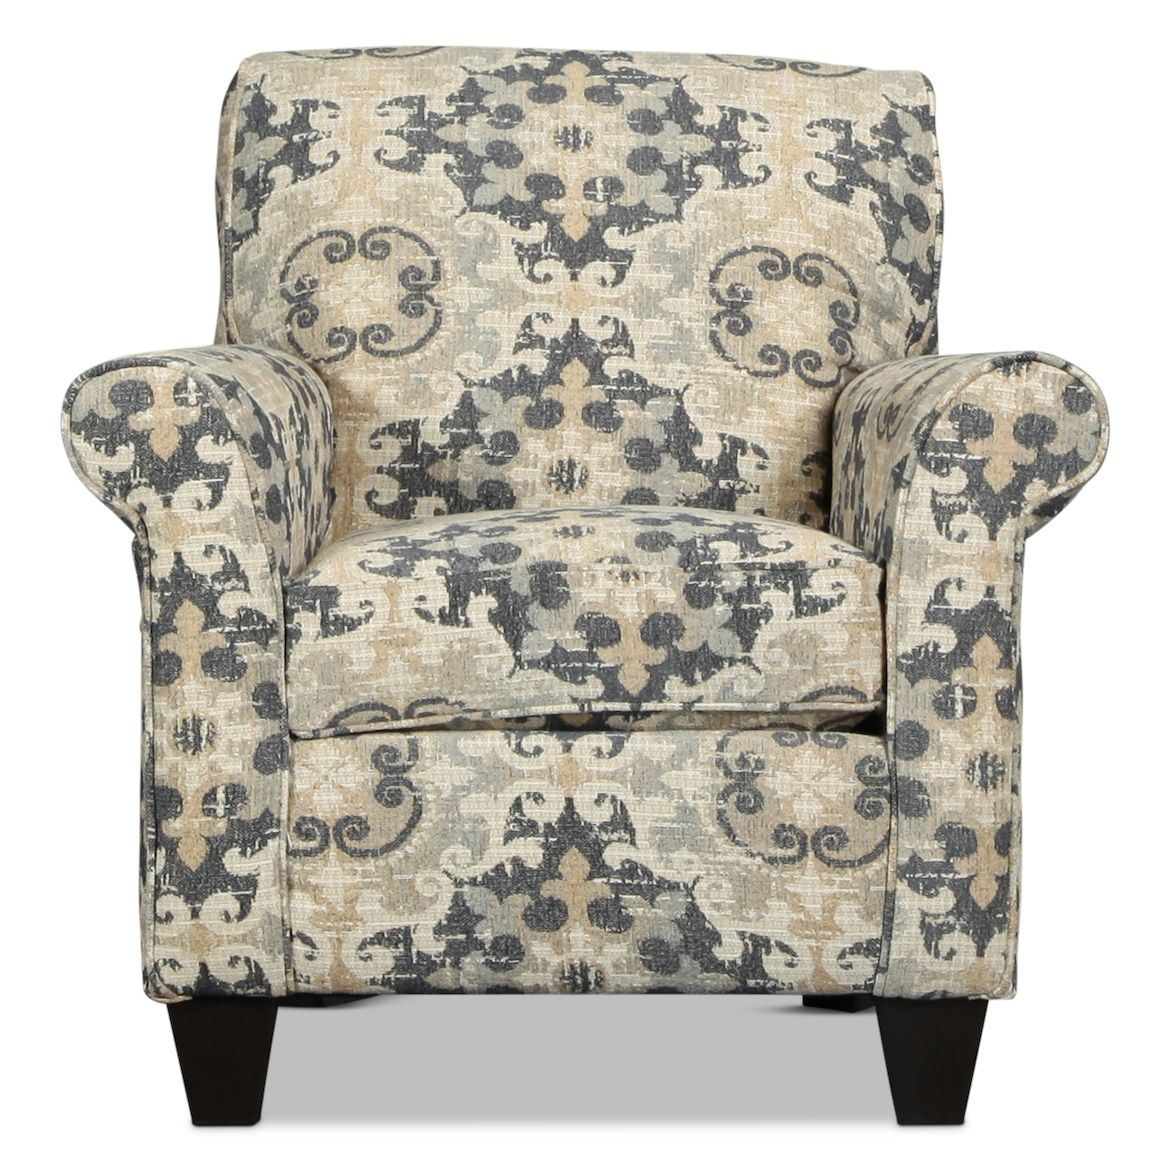 Pin By Stephanie Bocanegra On Decorating Furniture In 2020 Accent Chairs Grey Accent Chair Traditional Chairs